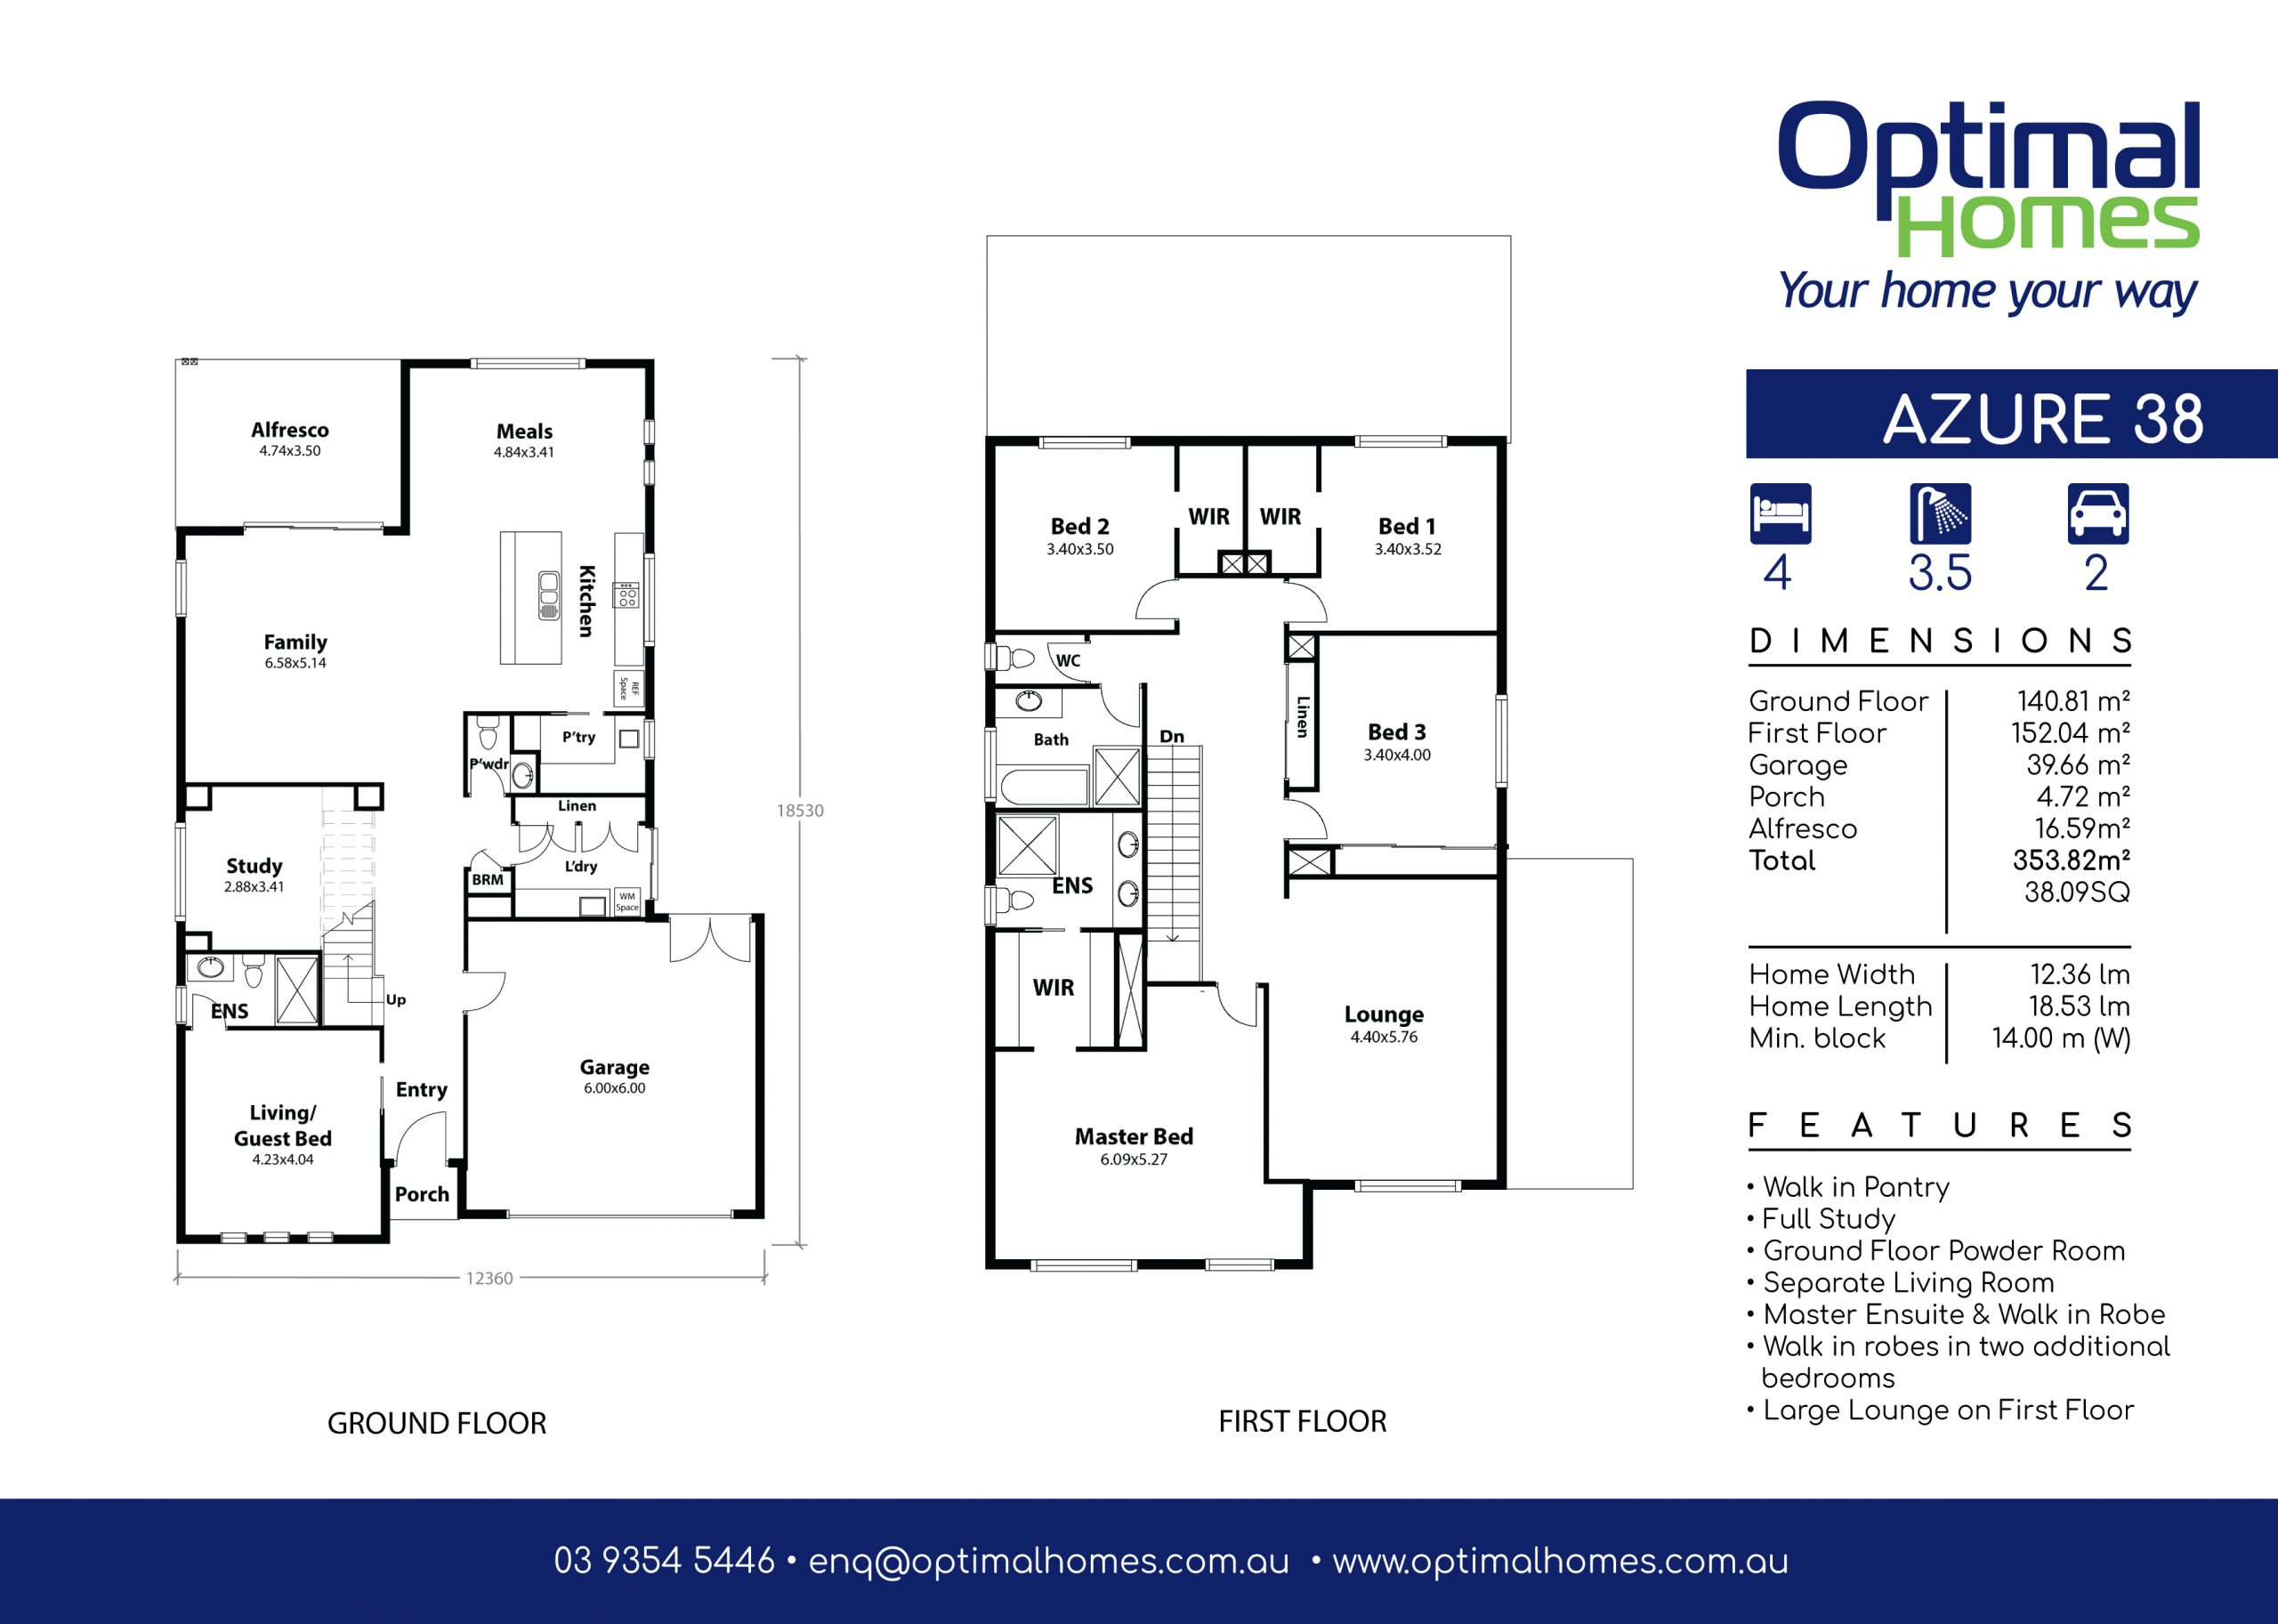 Azure 38 Floor Plan